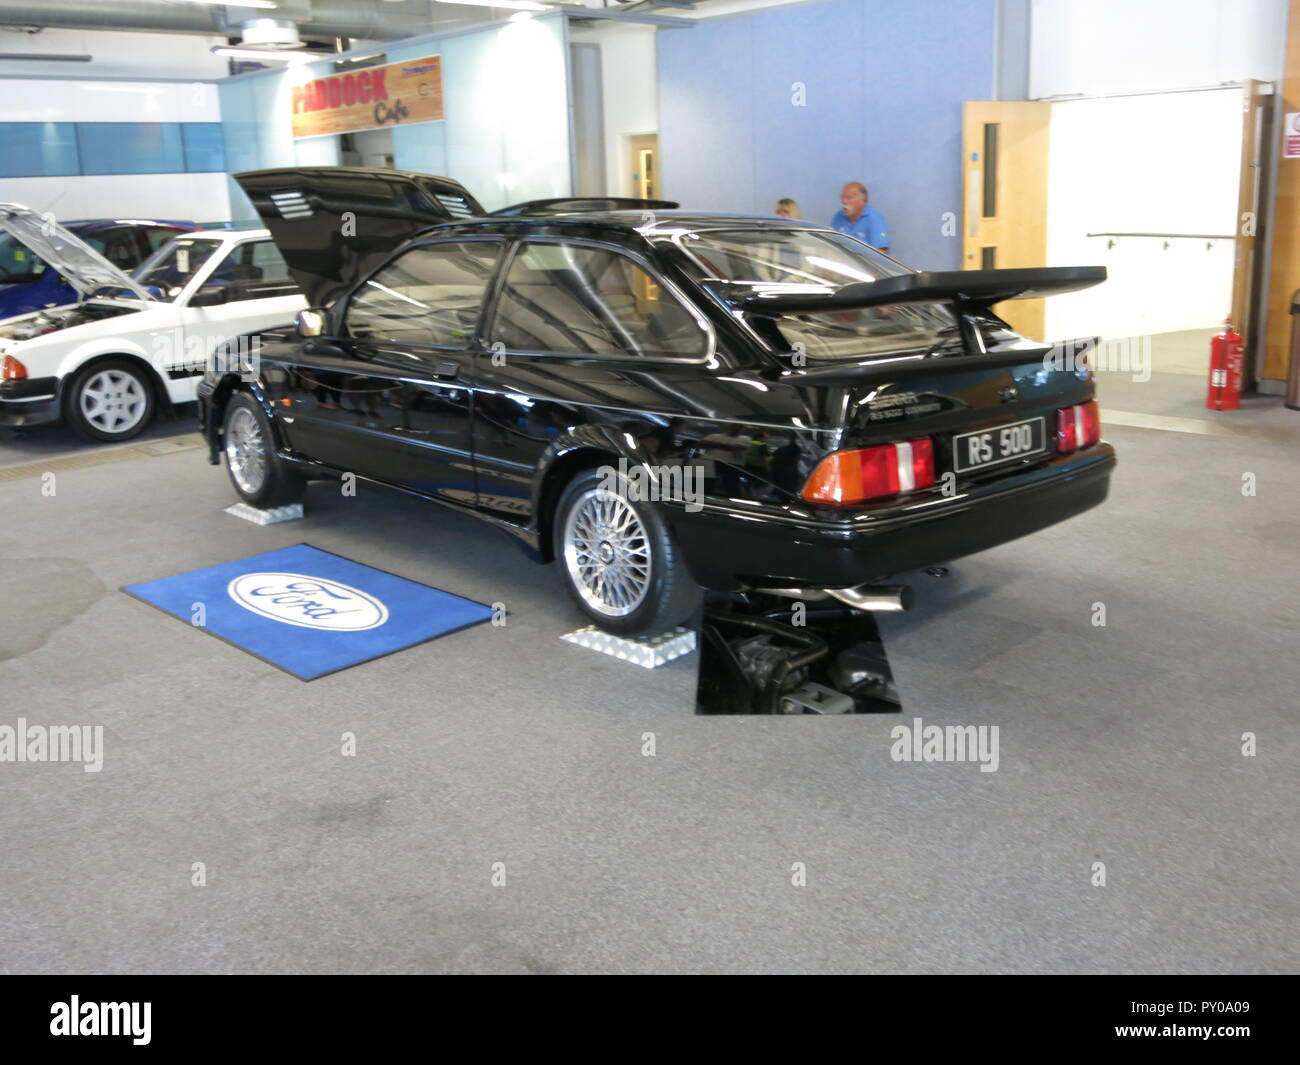 Ford Sierra RS500 Cosworth 1987 limited edition homologation evolution shown at donnington park race circuit at the RS owners club national day 2017 original oem factory standard concours condition mk1 1st generation - Stock Image